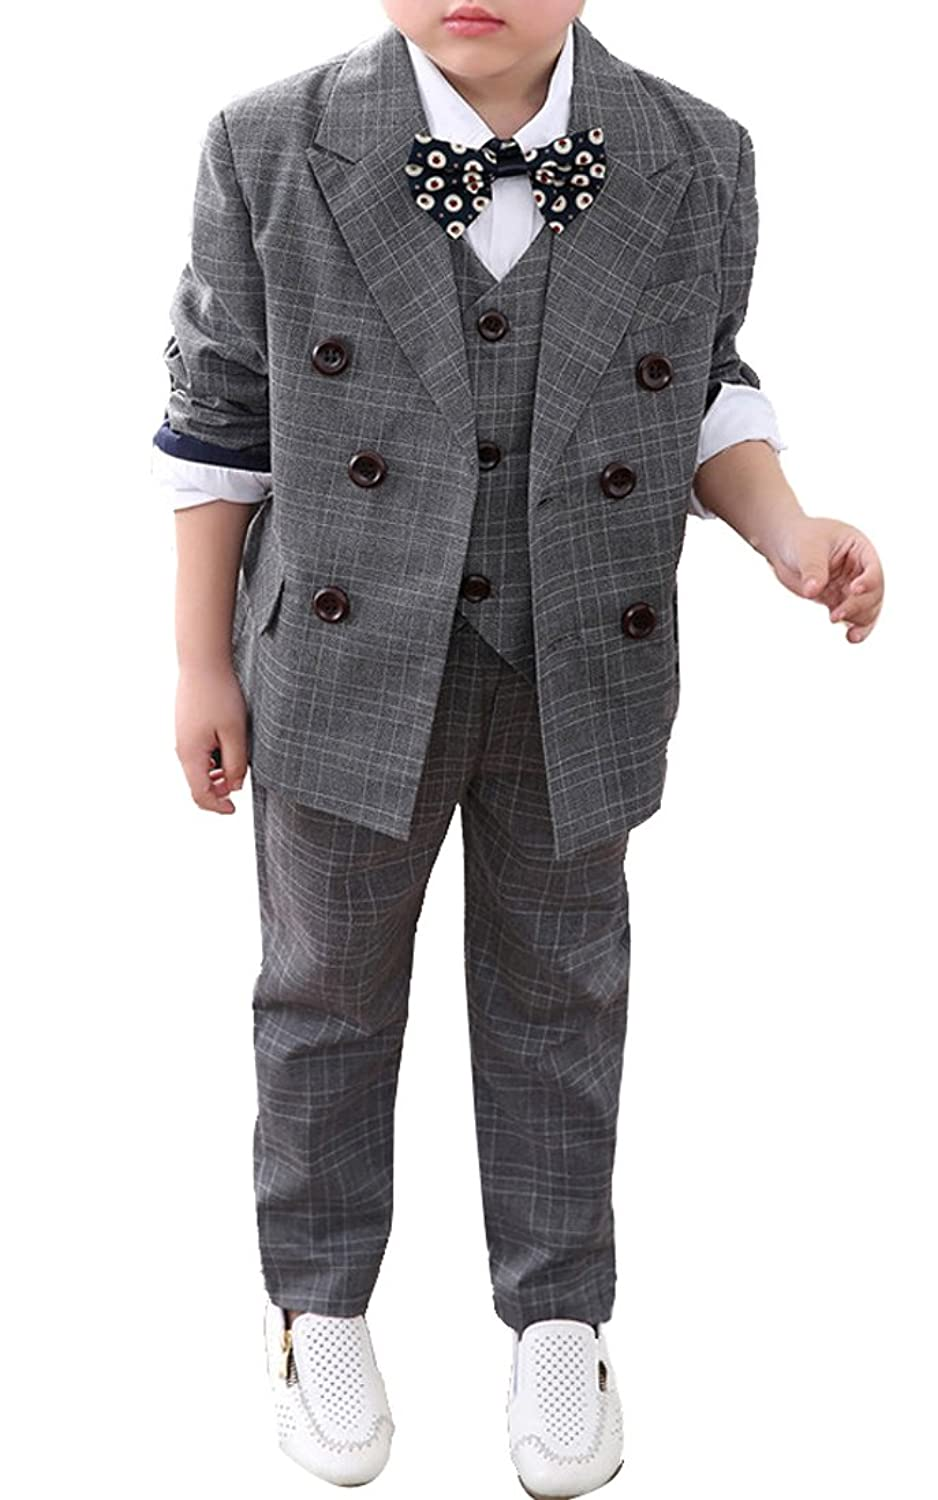 YUFAN SUIT ボーイズ